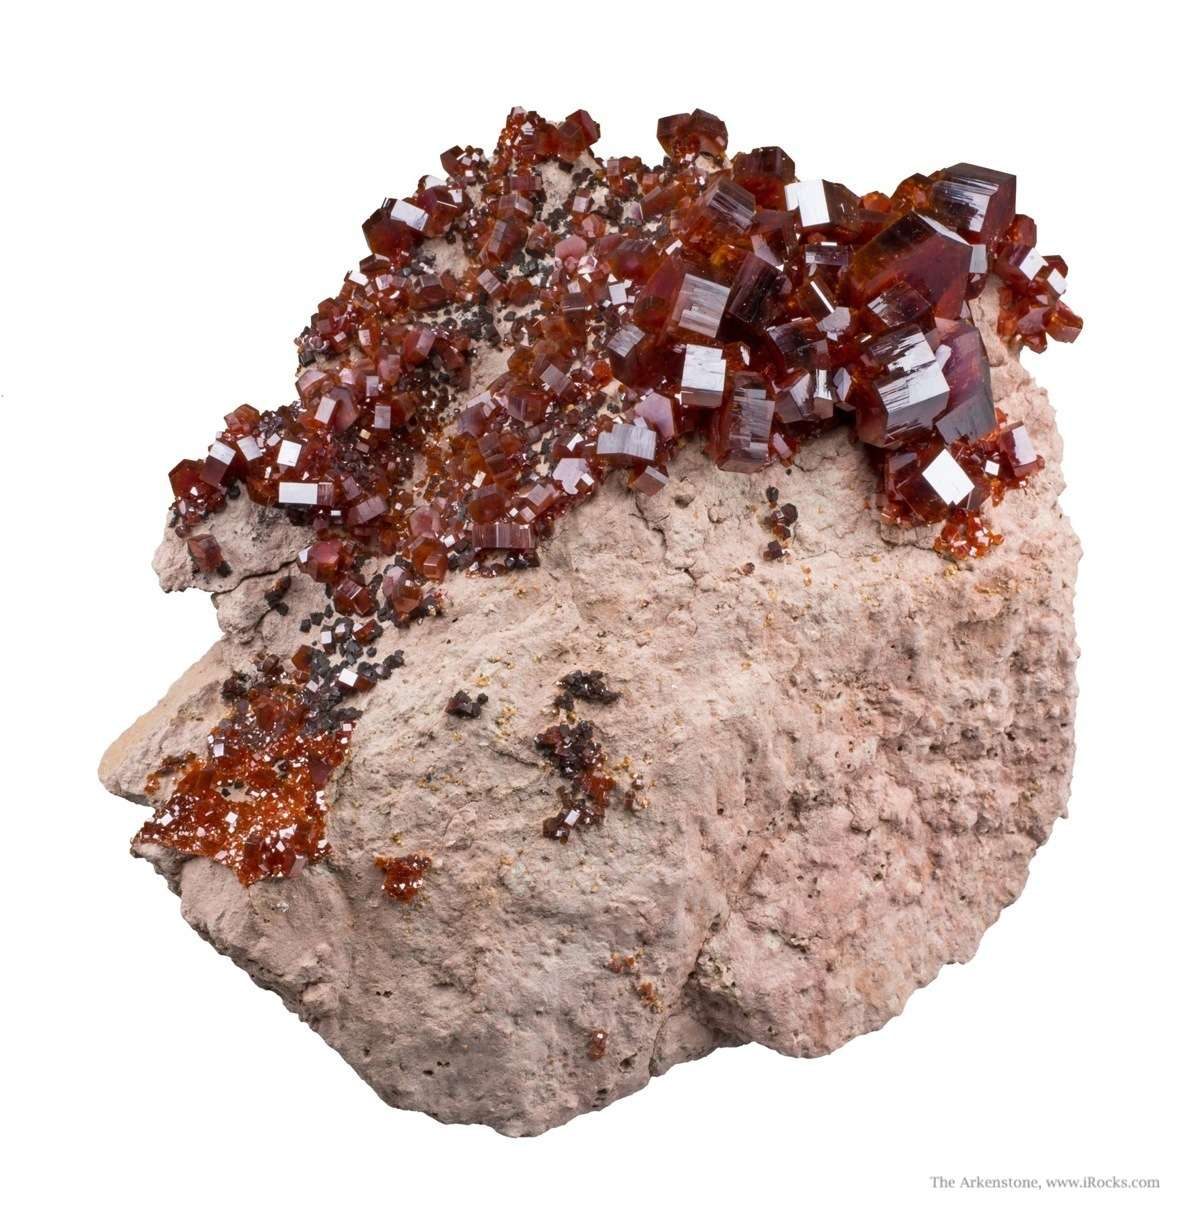 From 2009 noted thick robust crystals large specimen crystals 1 6 cm